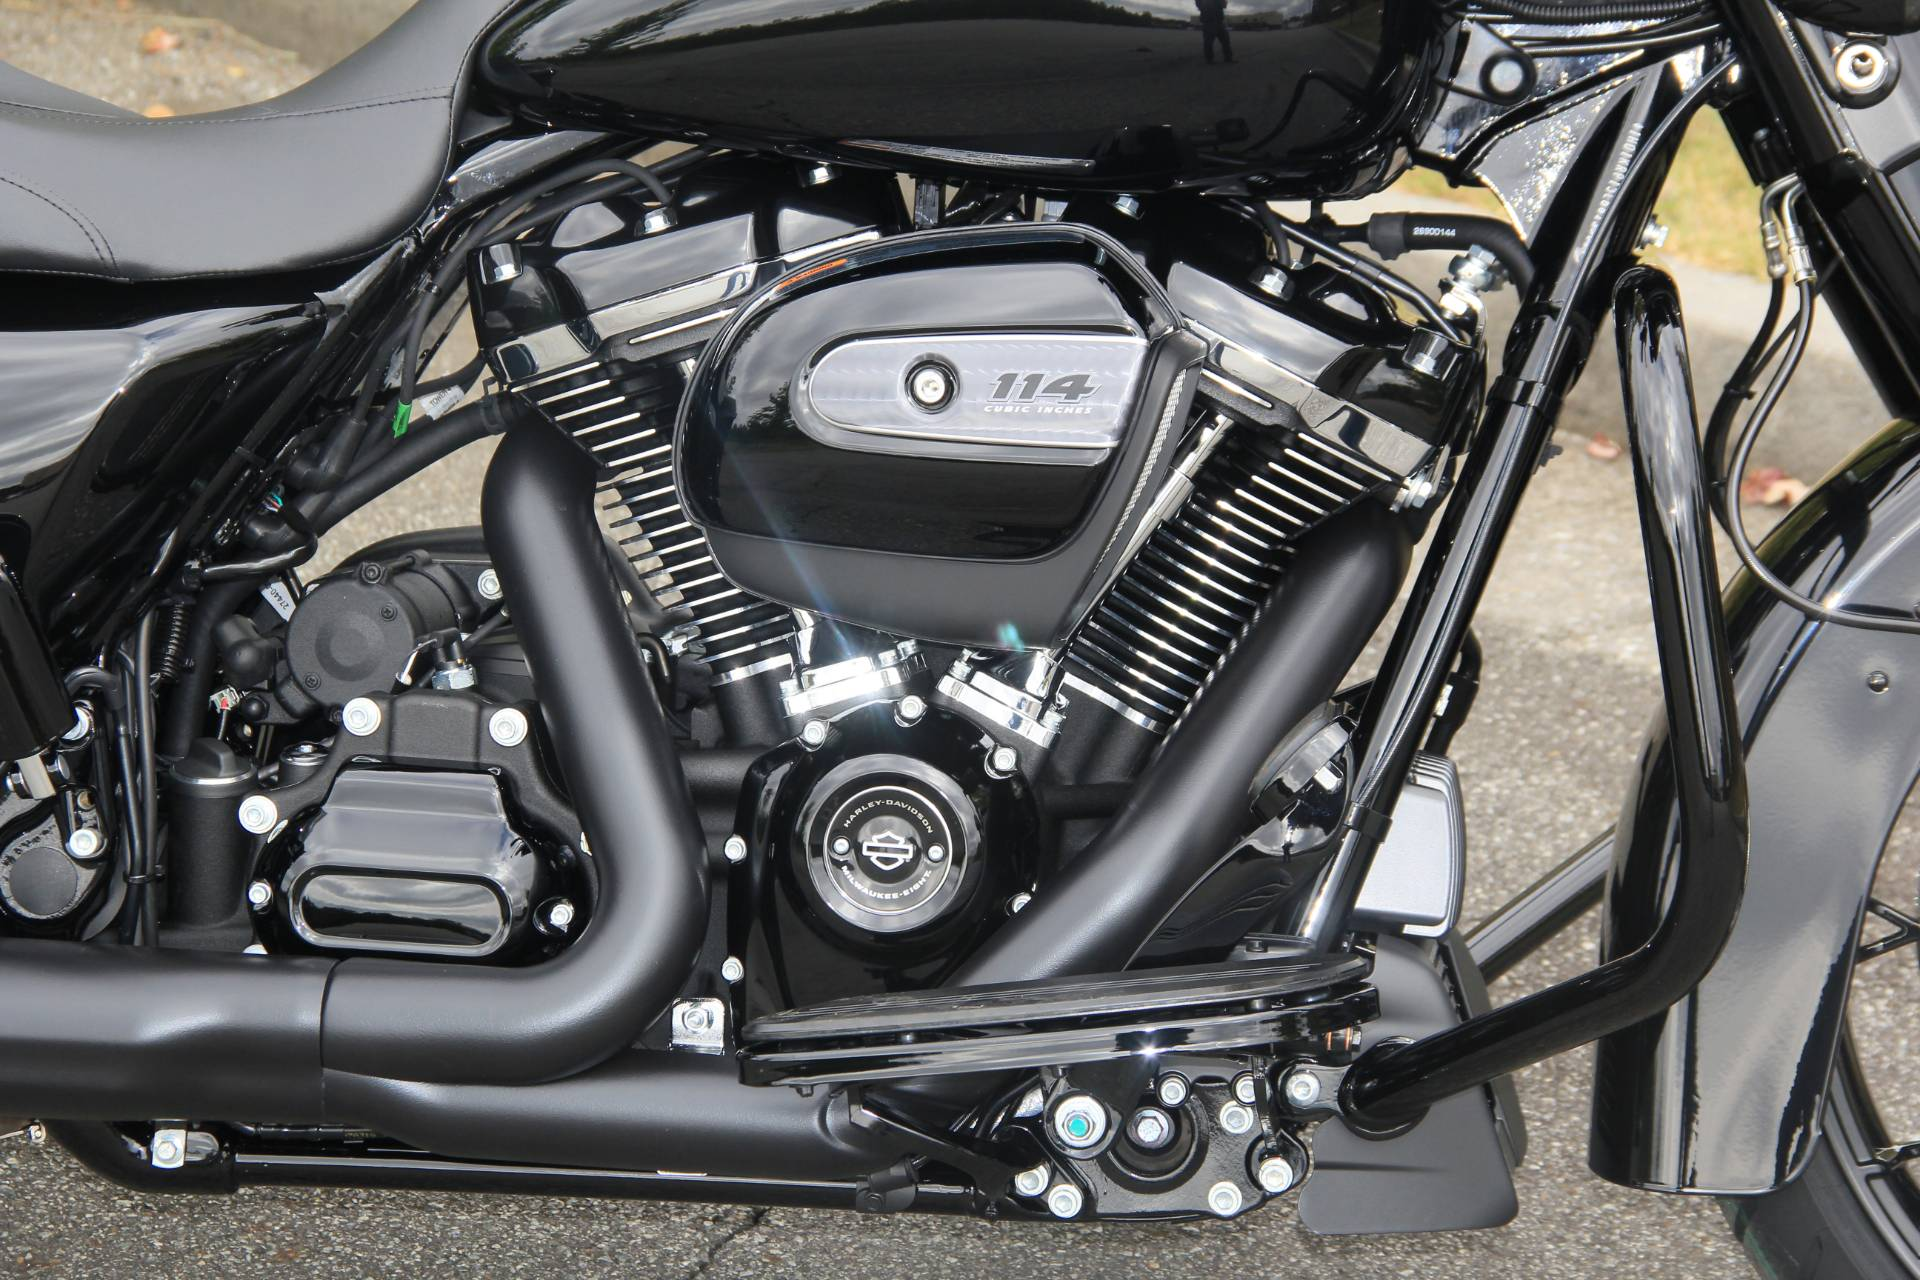 2020 Harley-Davidson Street Glide Special in Cartersville, Georgia - Photo 12